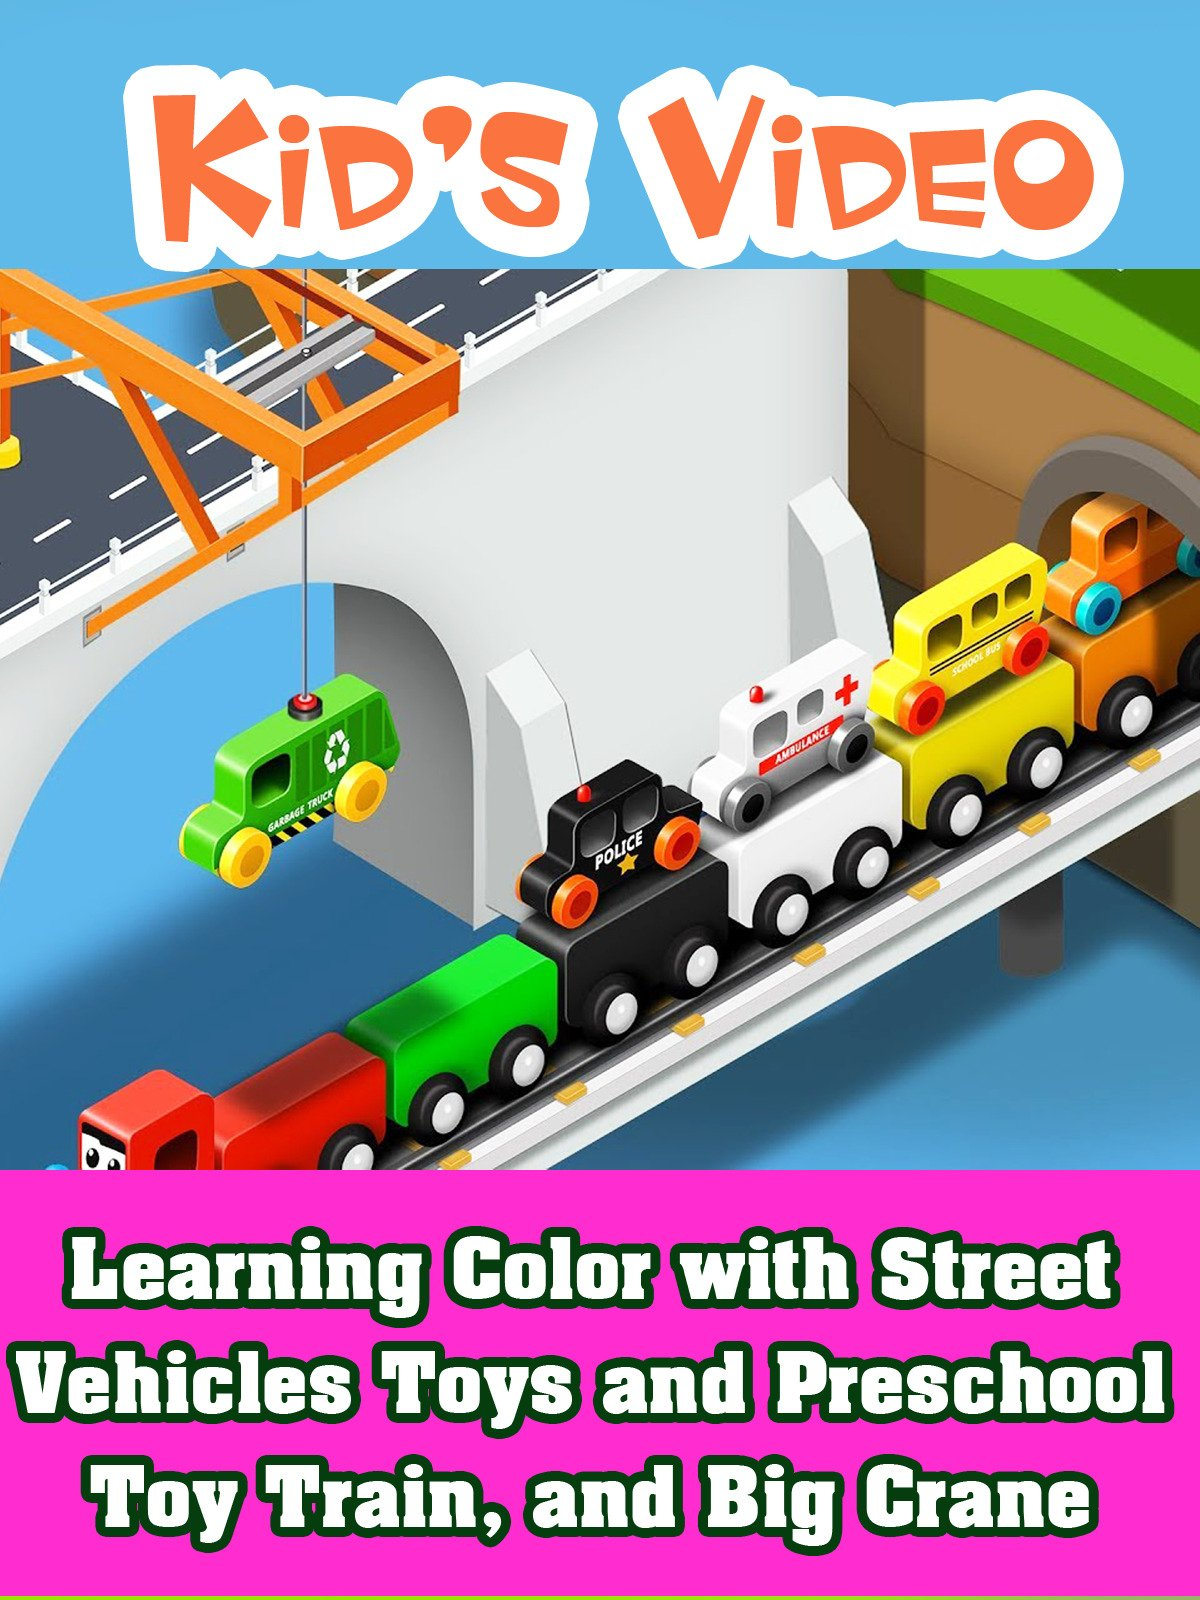 Learning Color with Street Vehicles Toys and Preschool Toy Train, and Big Crane